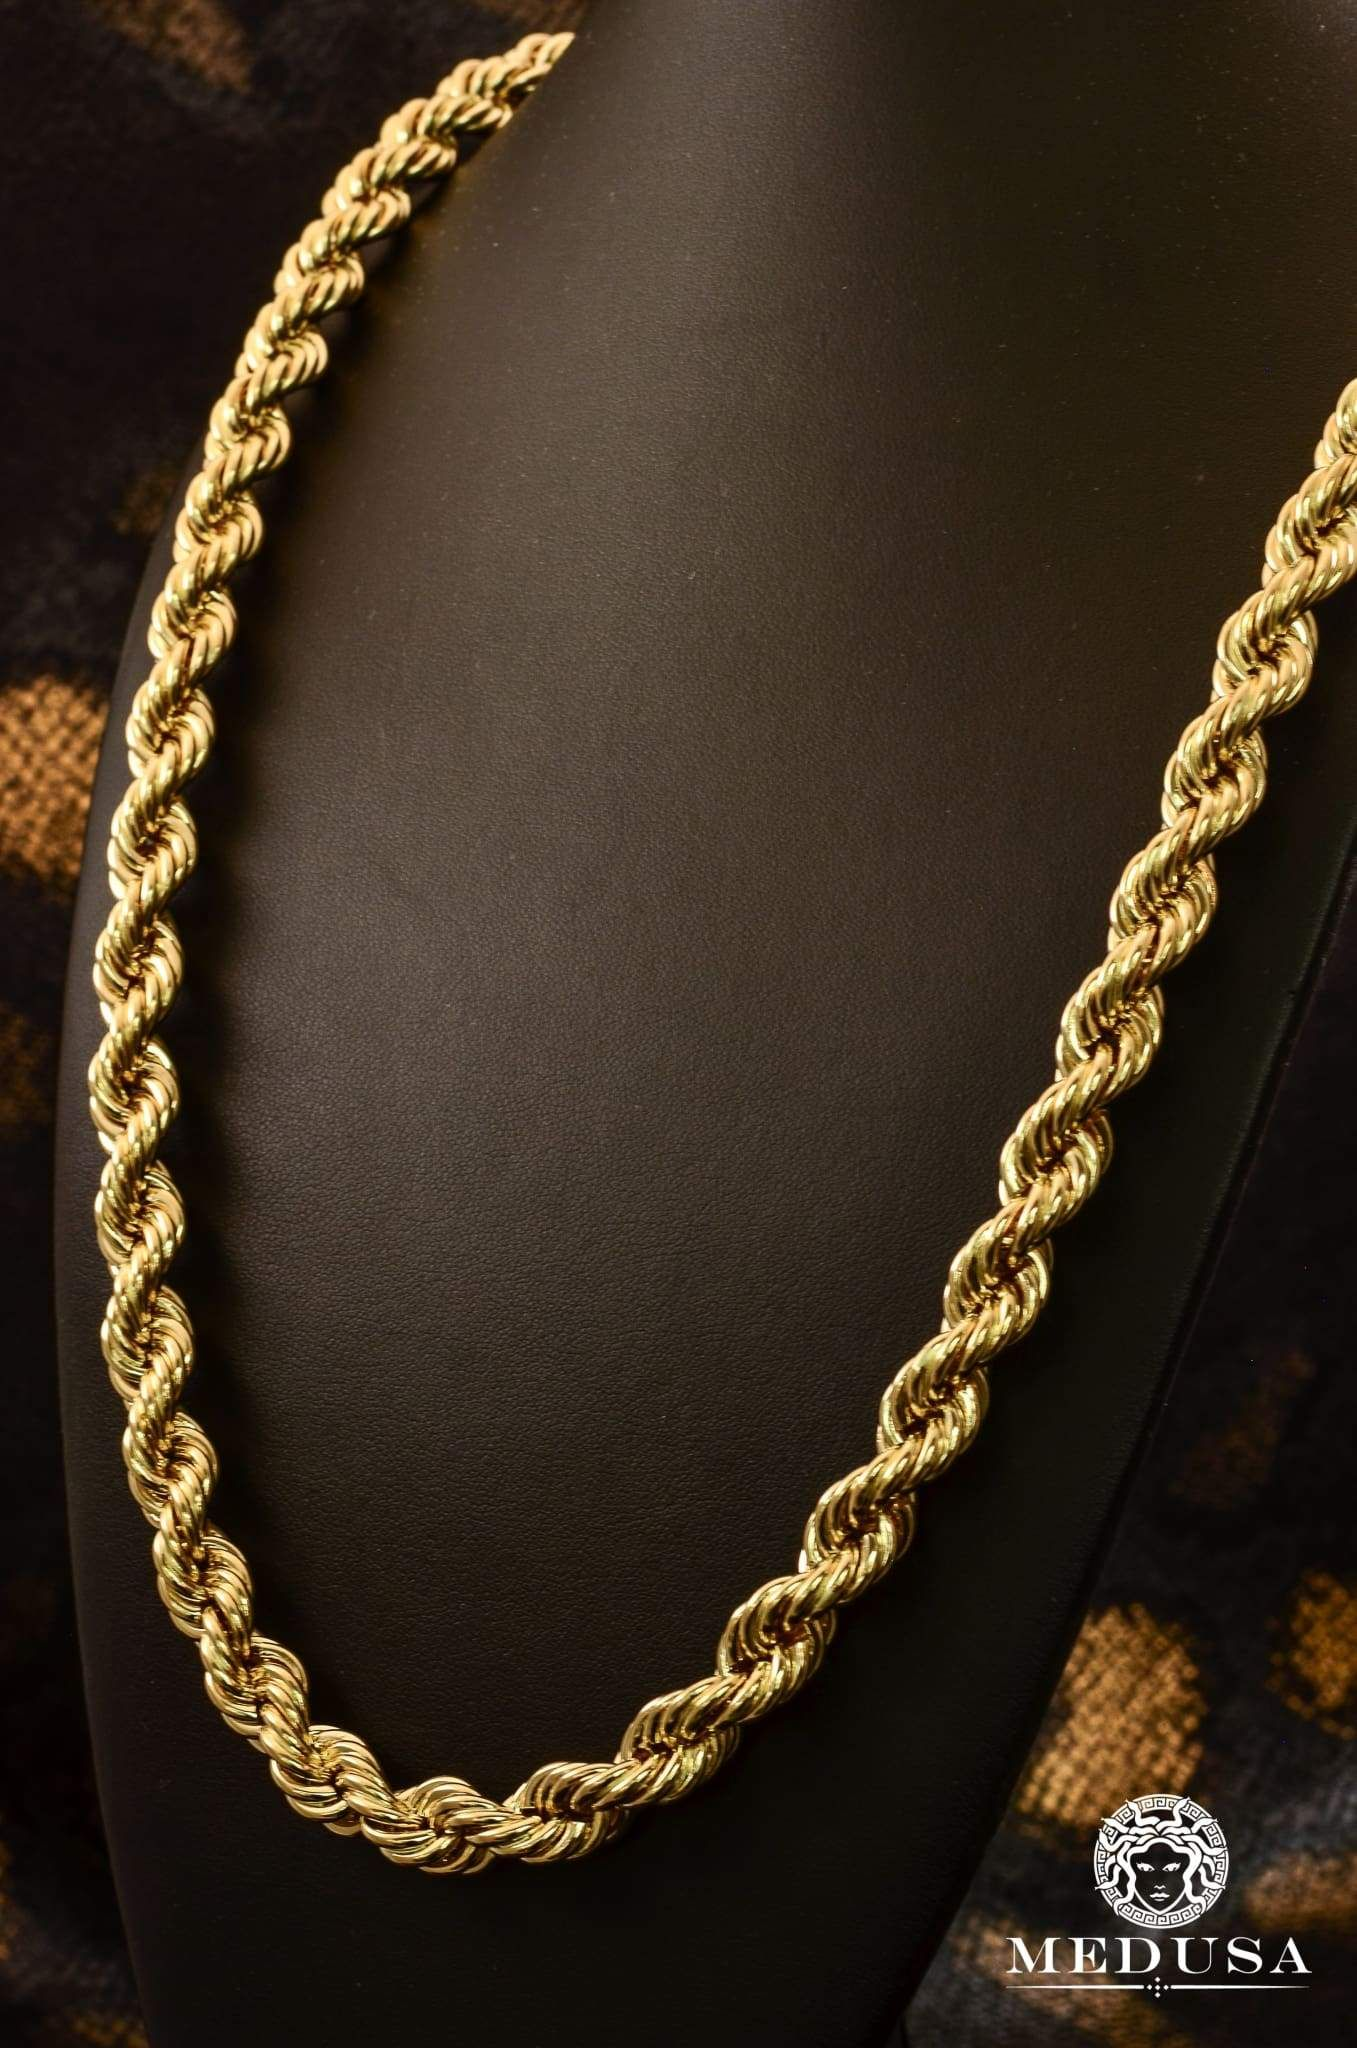 10mm Torsade Gold Chain Jewelry Gold Bangles Design Gold Chains For Men